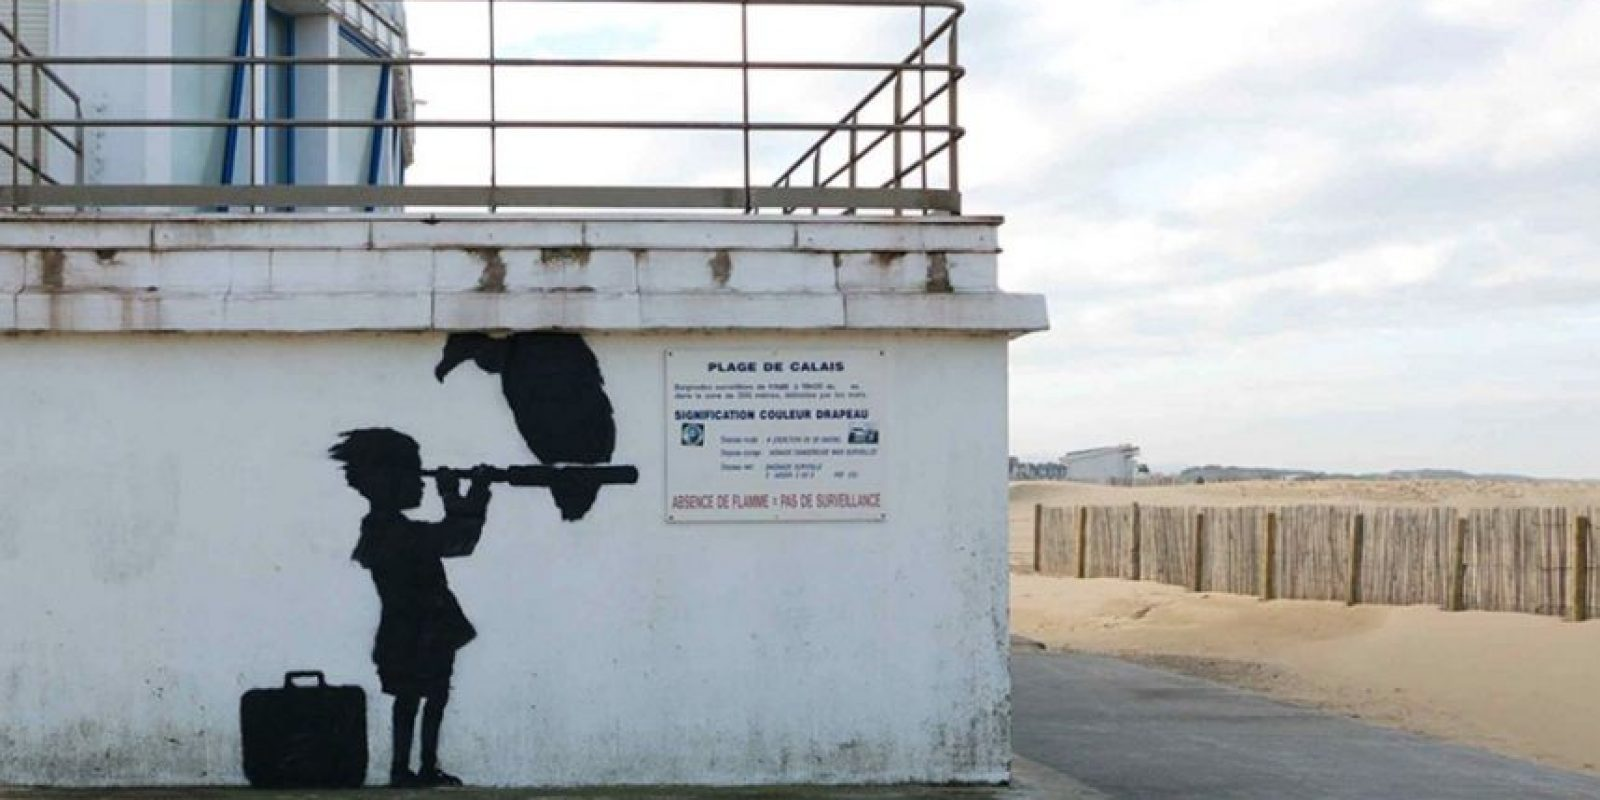 Foto: vía banksy.co.uk